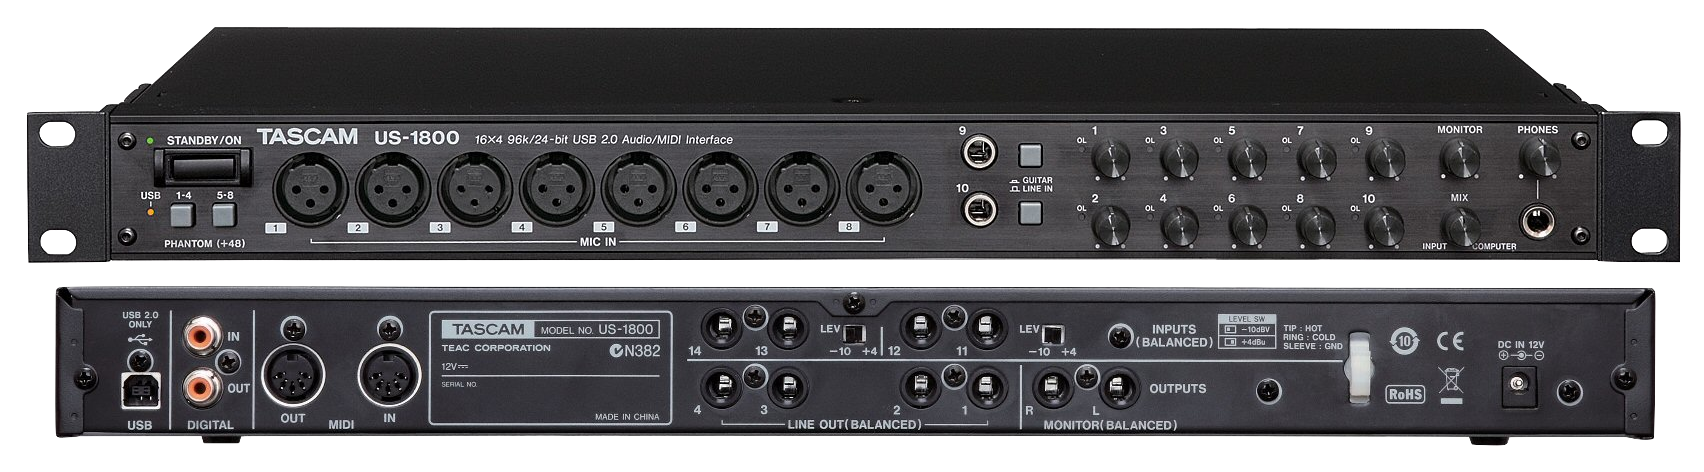 TASCAM US-1800 AUDIO INTERFACE DESCARGAR CONTROLADOR